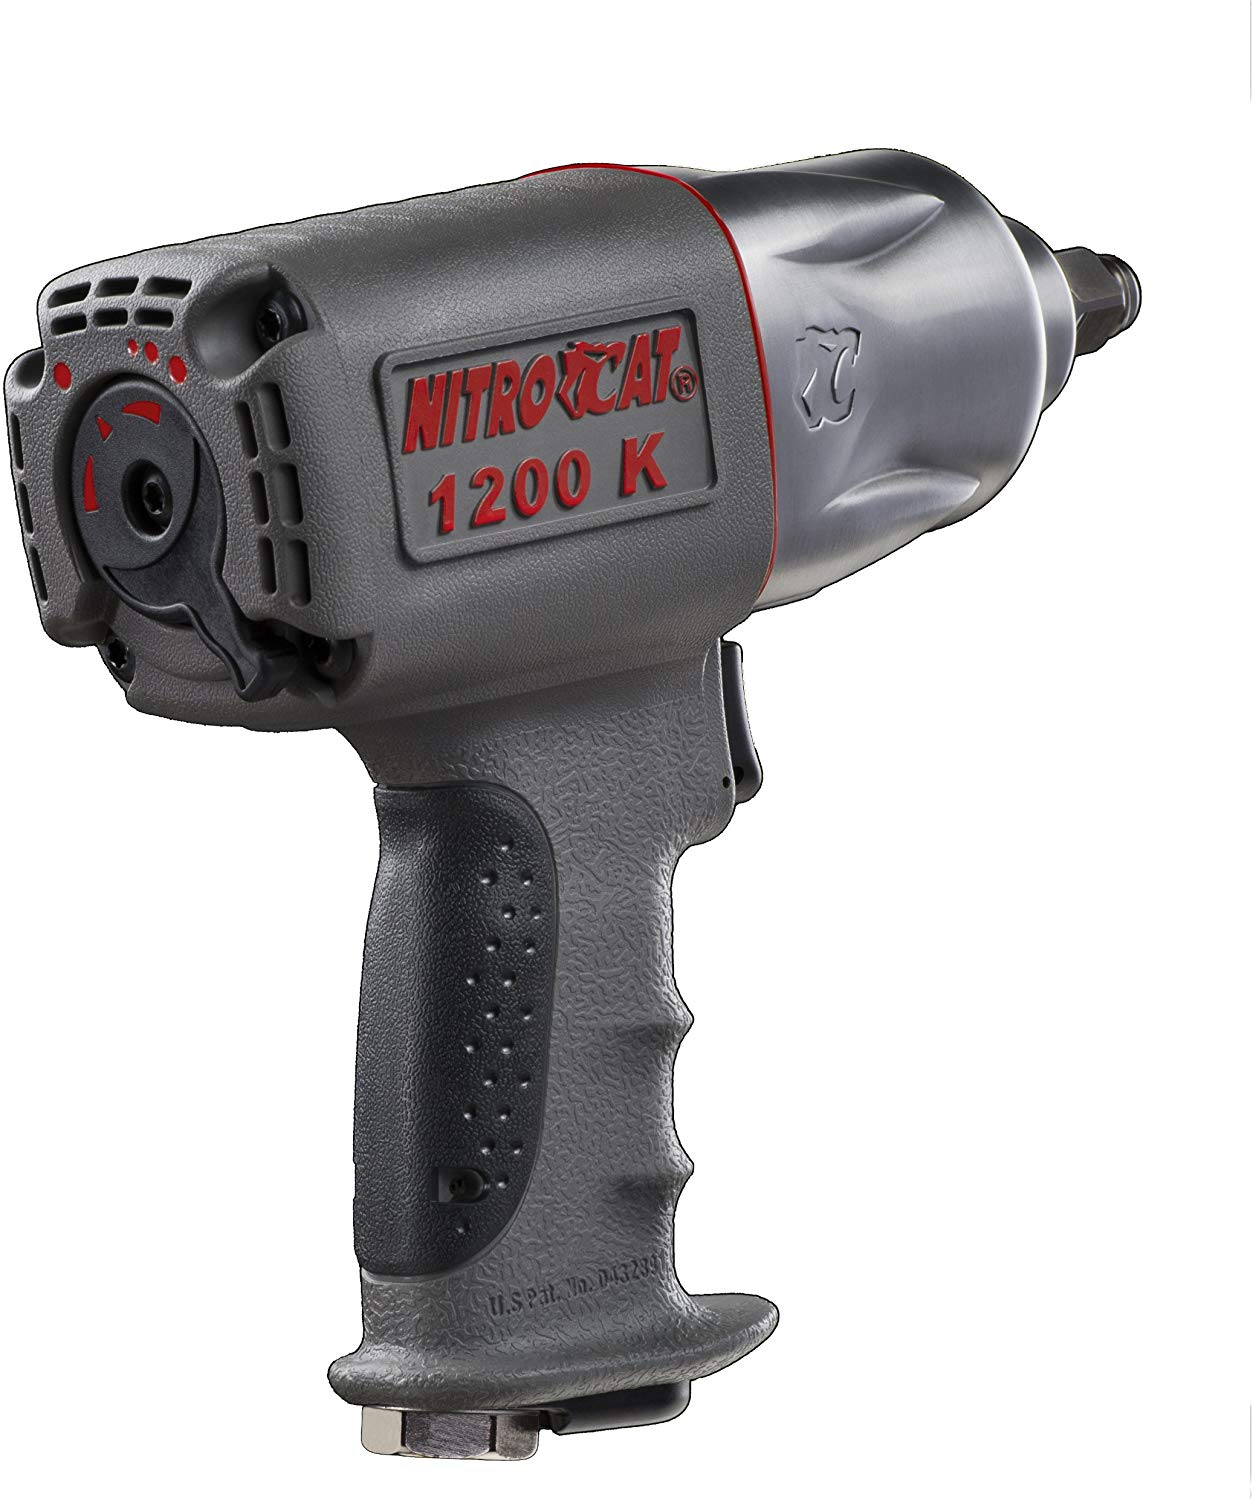 NitroCat 1200-K Air Impact Wrench